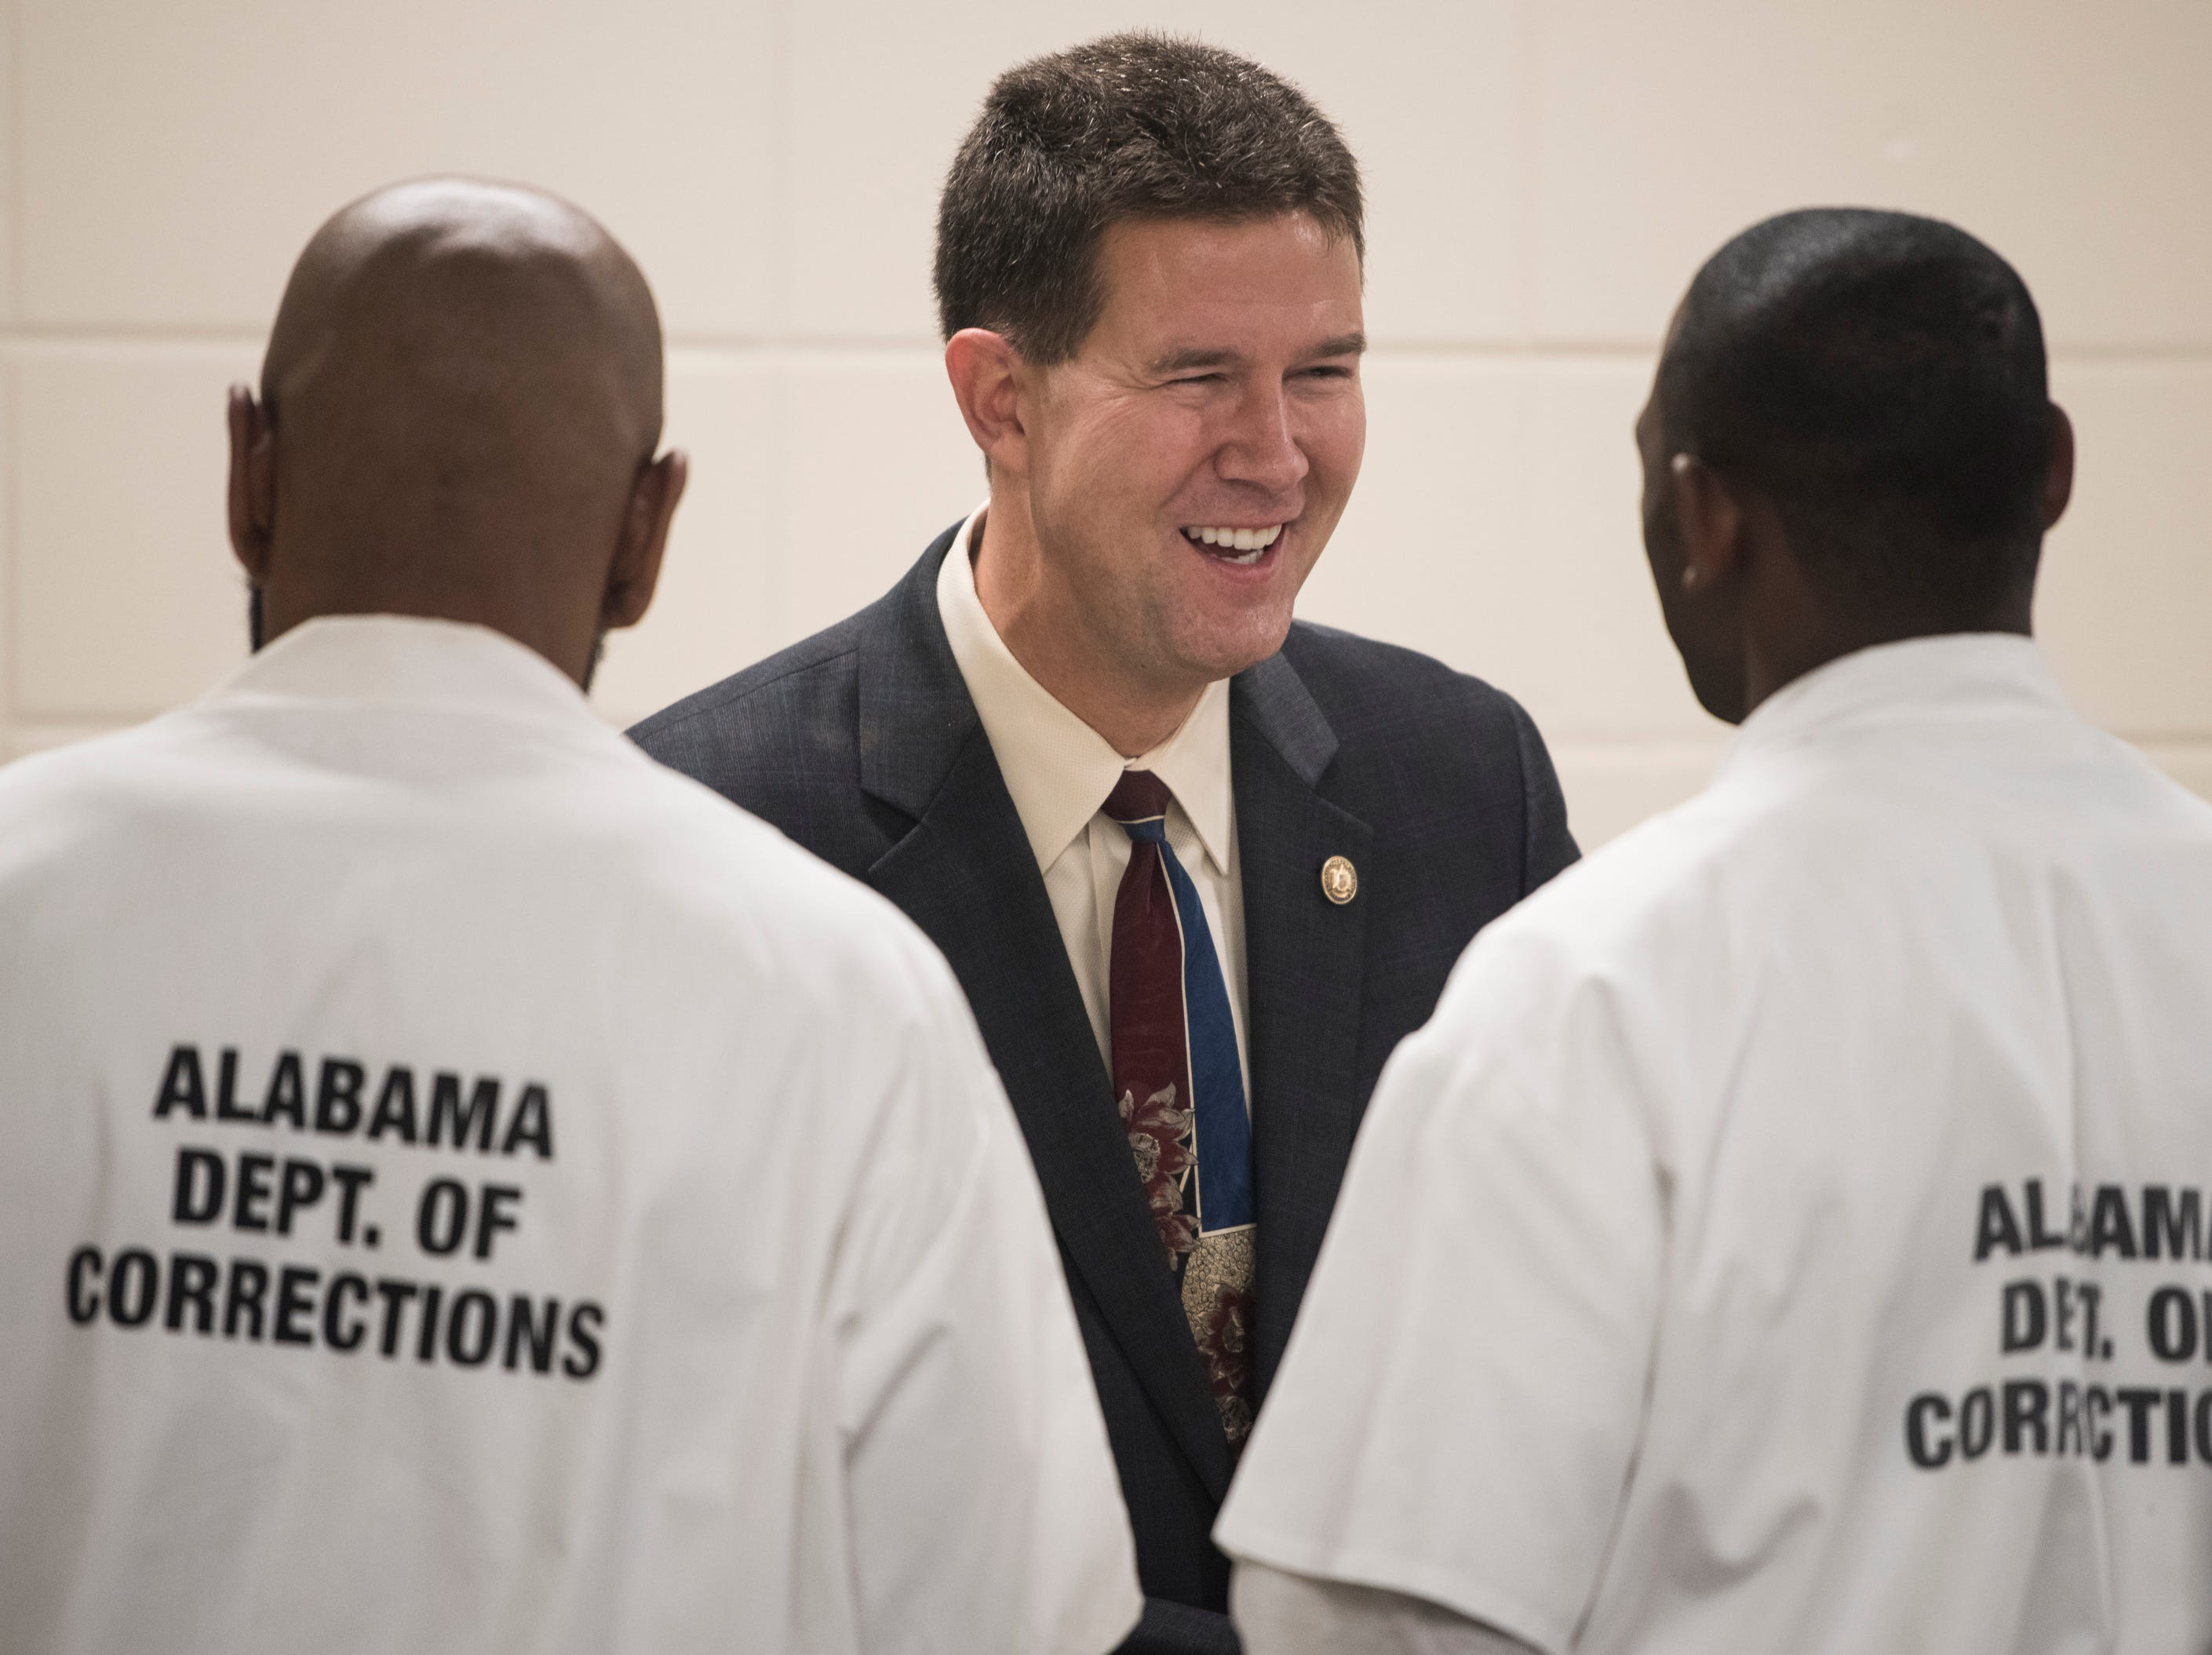 Alabama Secretary of State John Merrill meets student-inmates at the Ingram State Technical College Draper instructional service center in Elmore, Ala., on Thursday, Feb. 21, 2019.